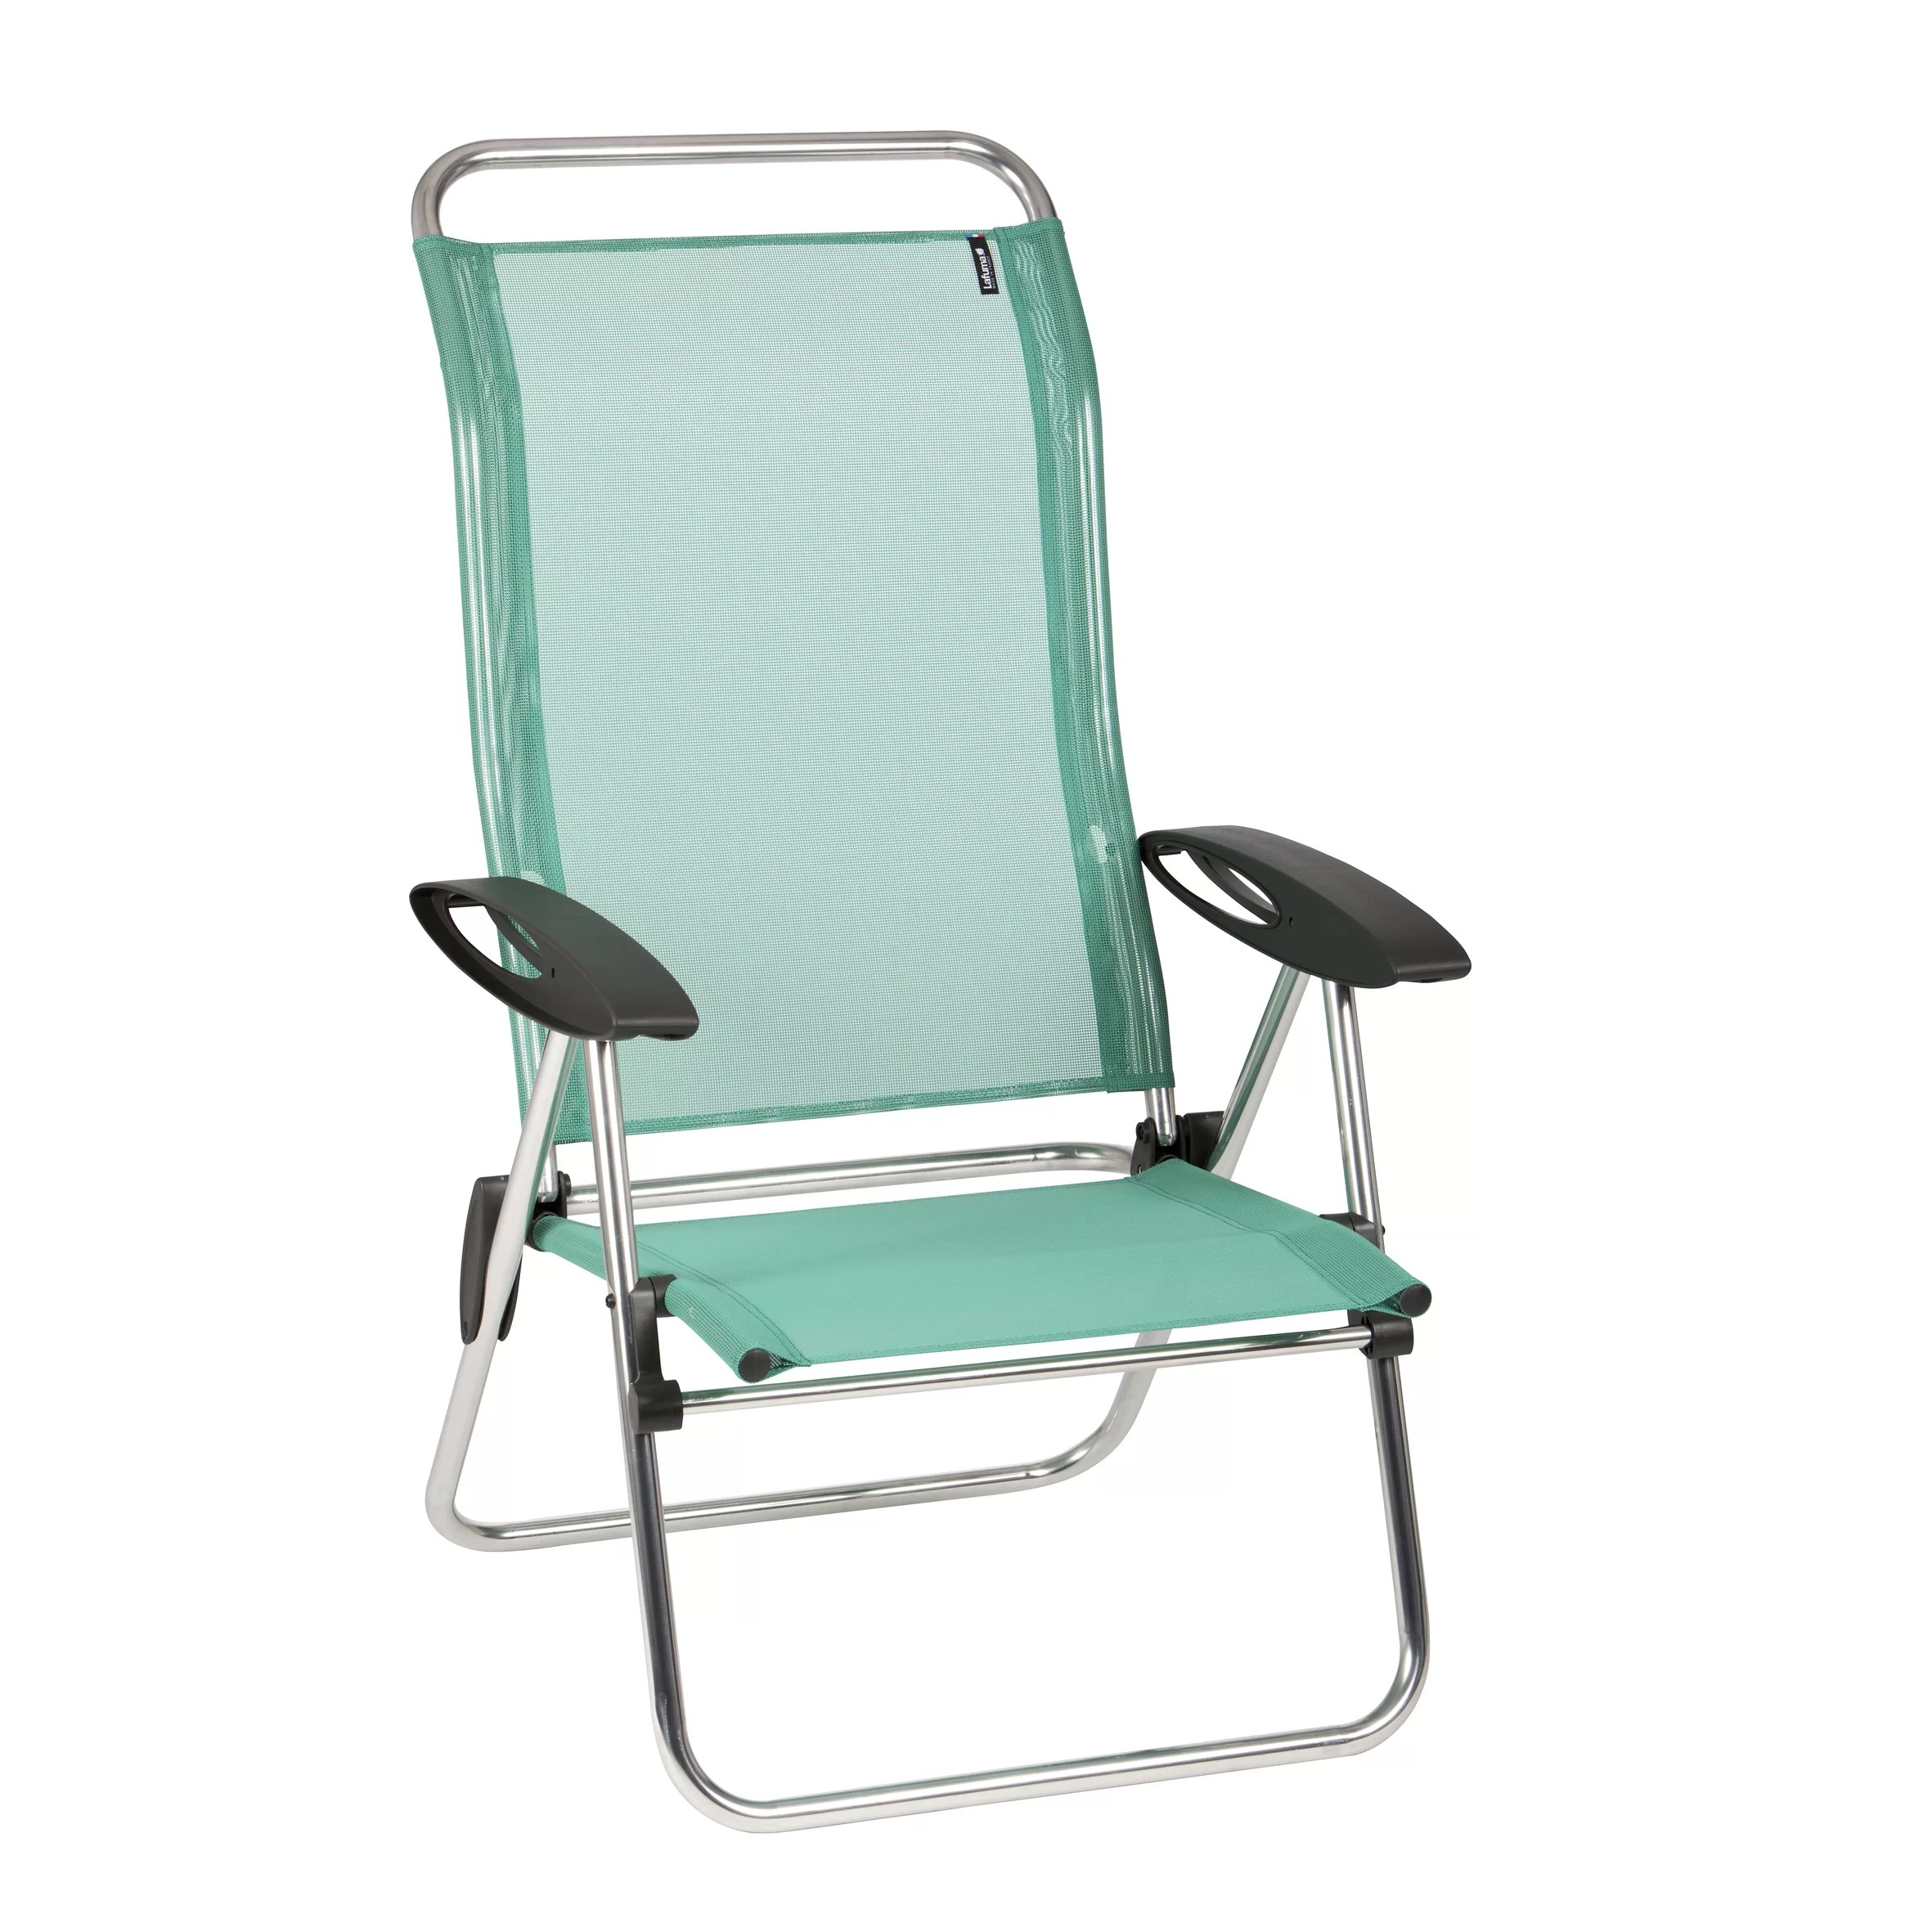 Folding Beach Chair Lafuma Low Elips Folding Beach Chair And Reviews Wayfair